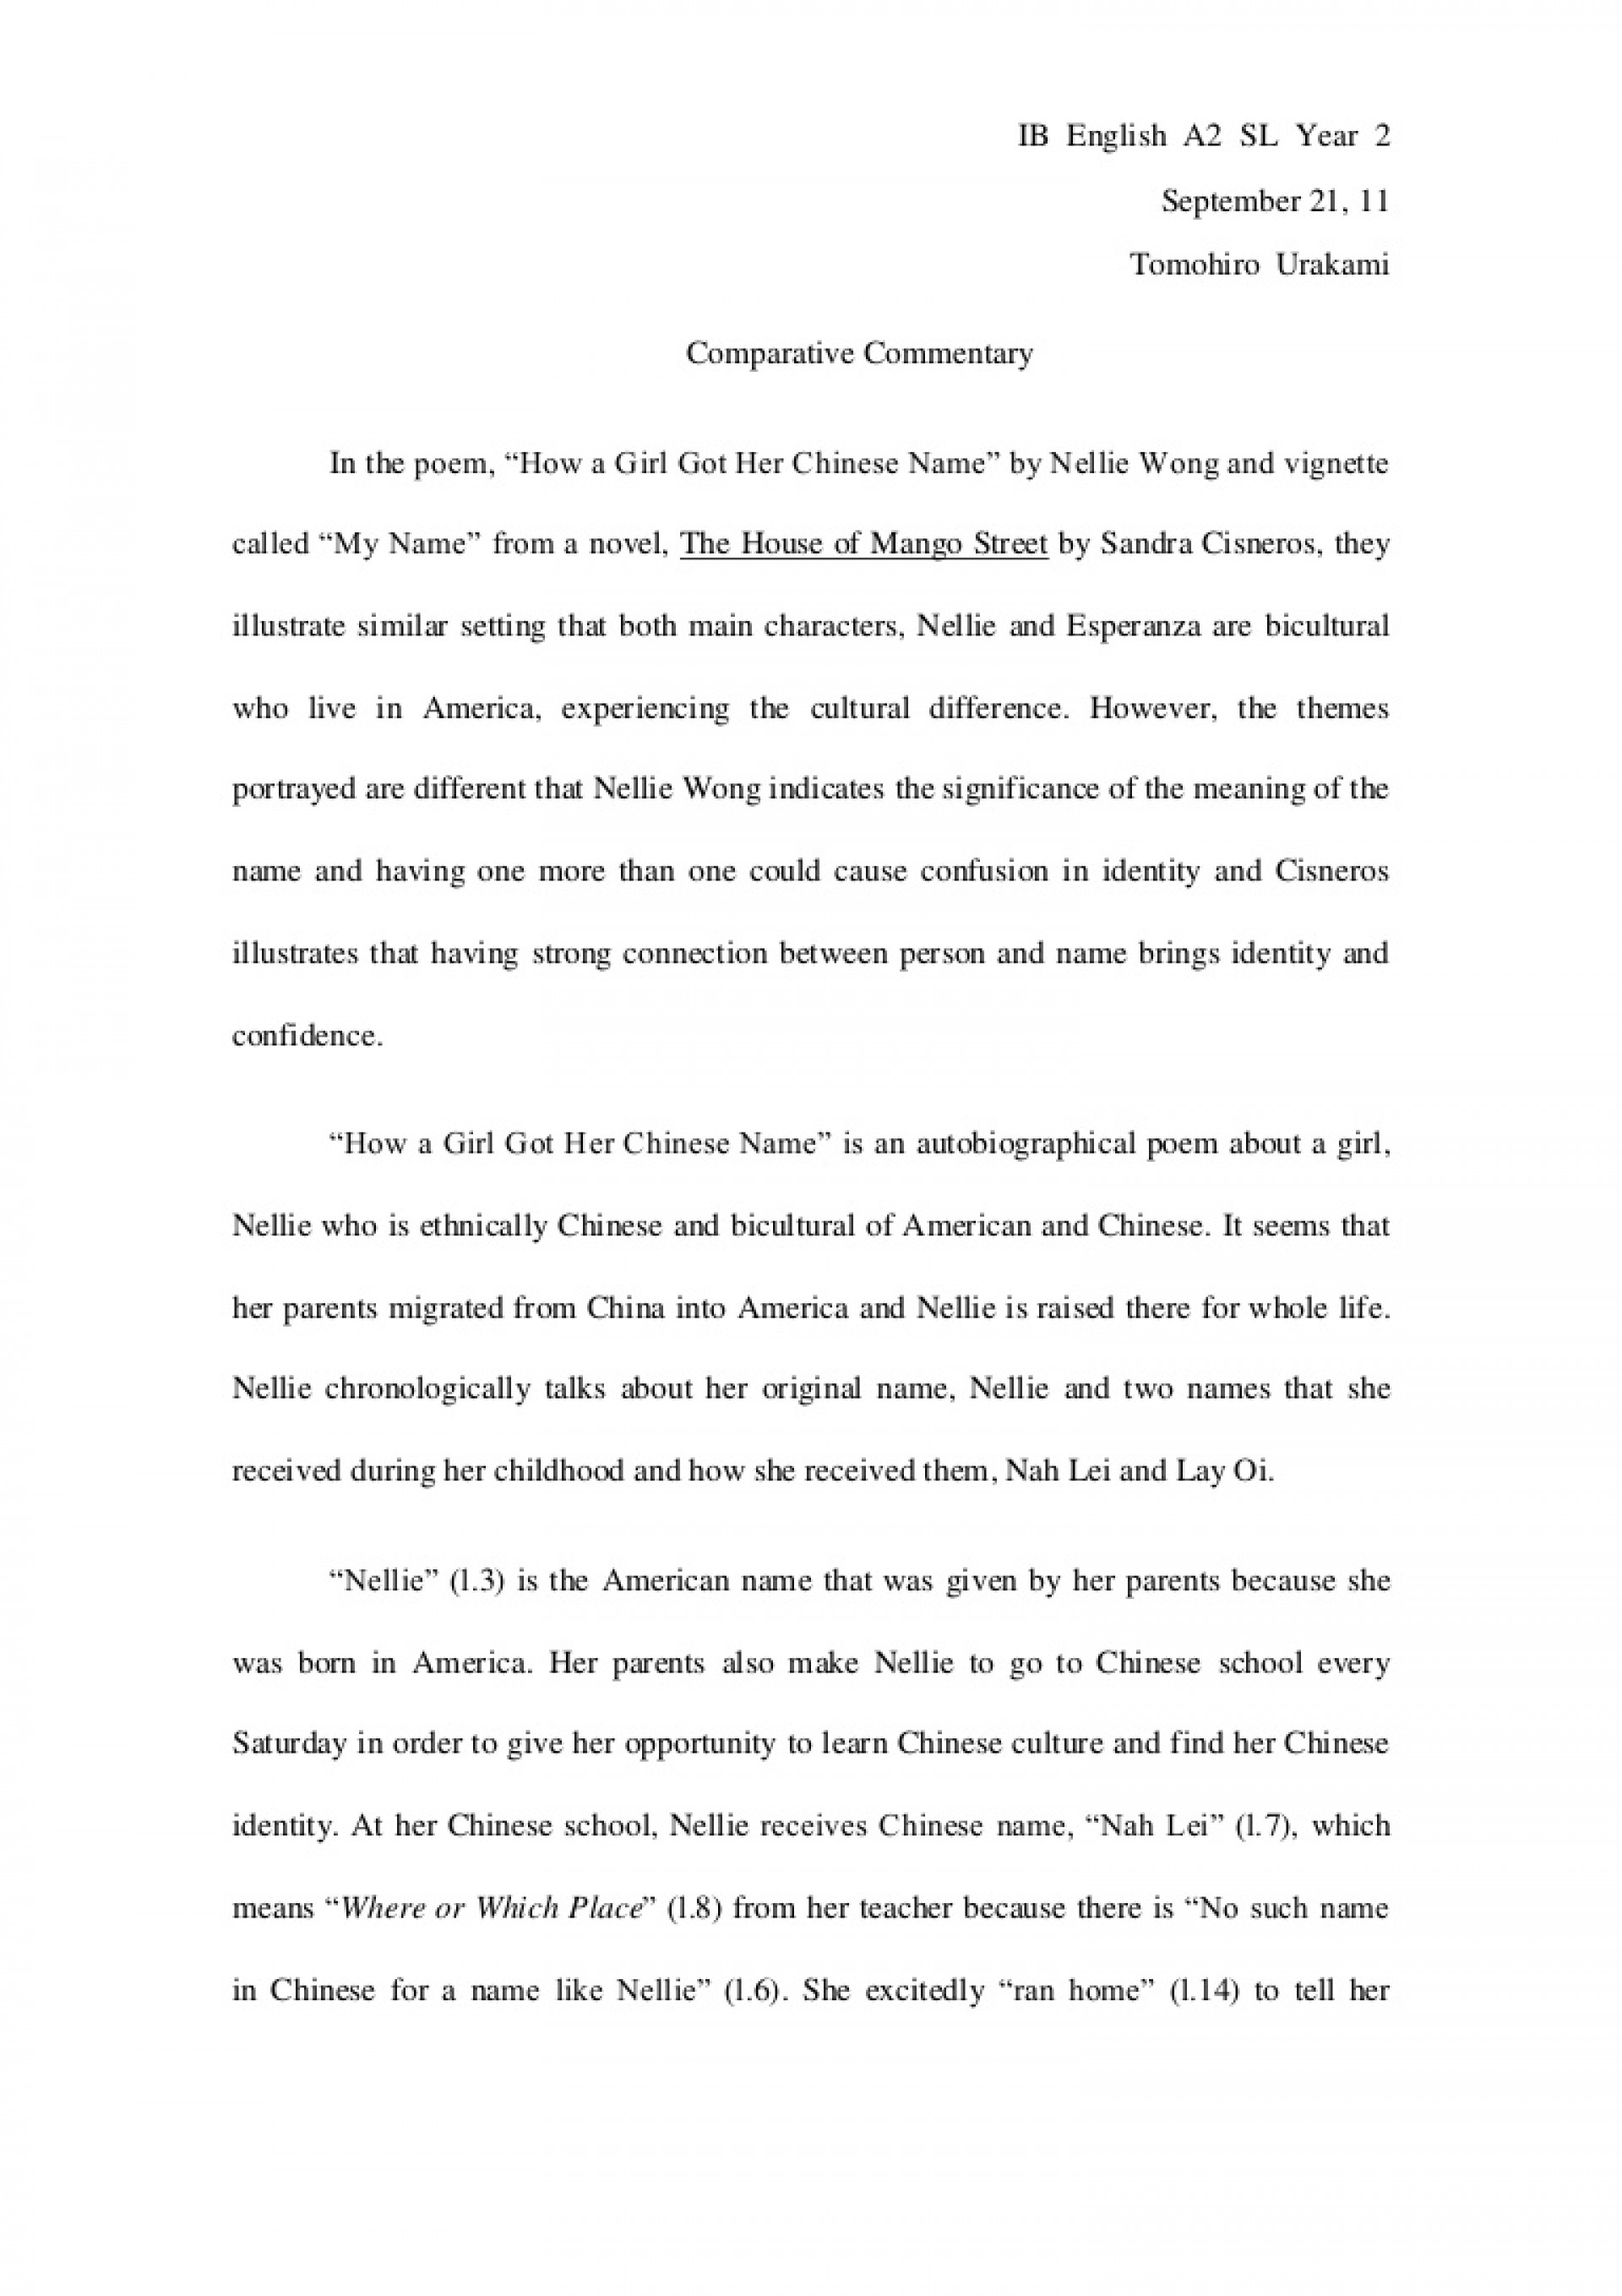 002 Comparative Essay Example Comparativeessaydraft Phpapp02 Thumbnail Frightening Pdf Thesis Literary Examples 1920